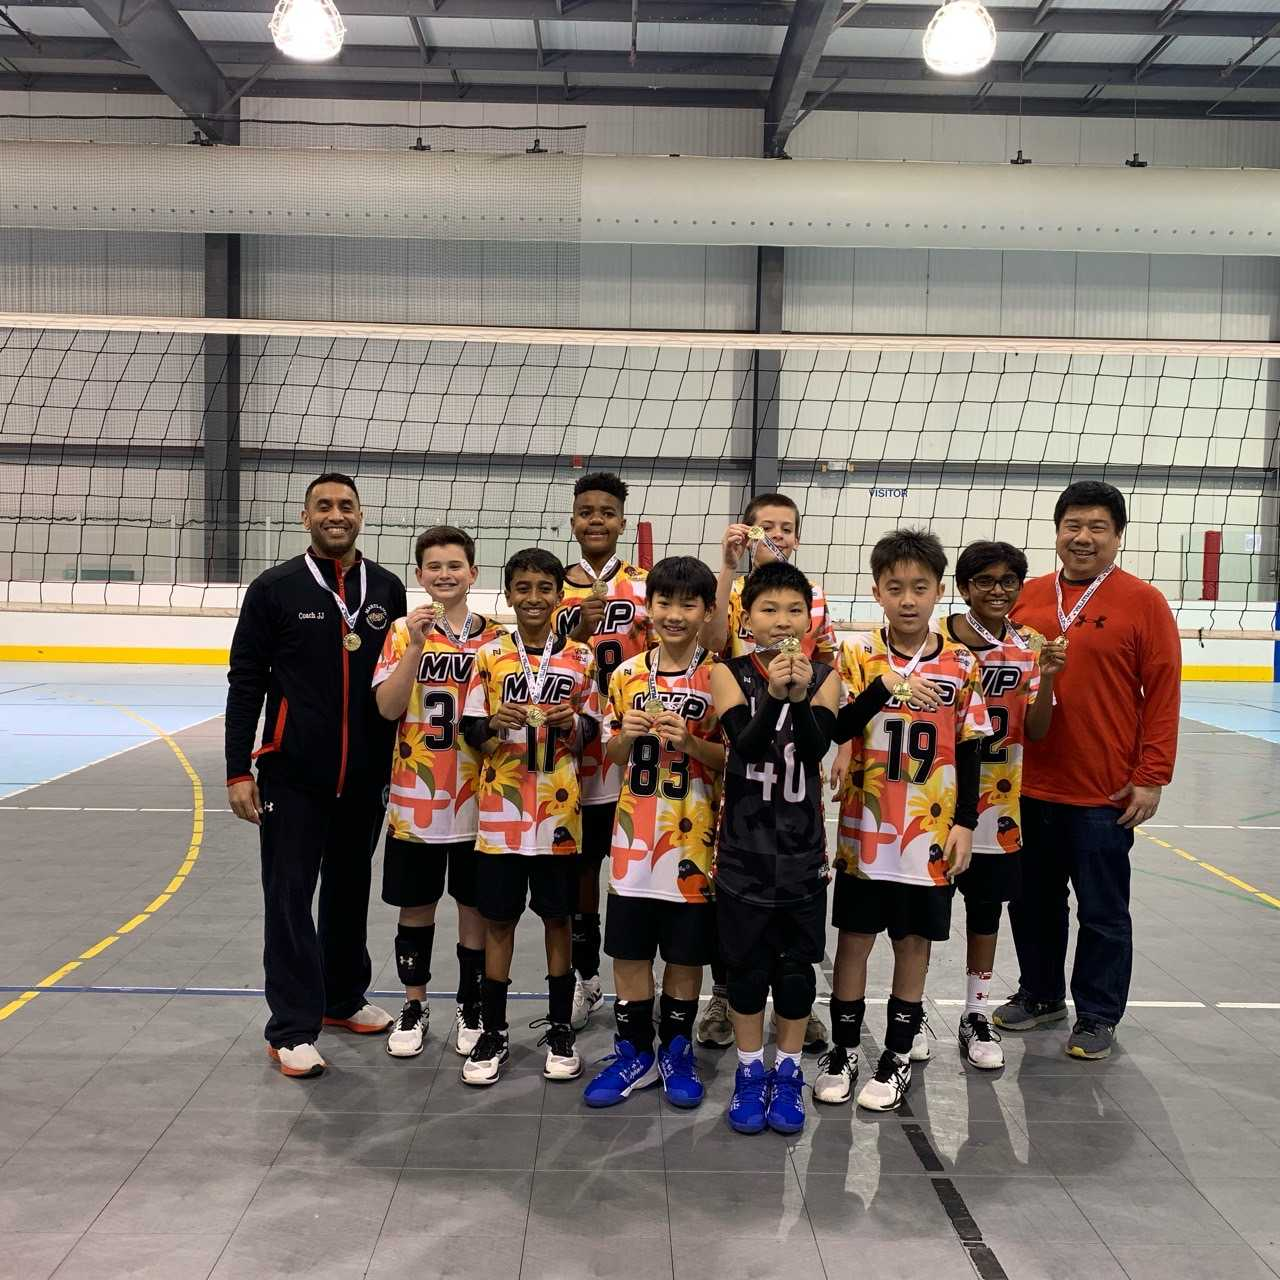 MVP 12s holding gold medals